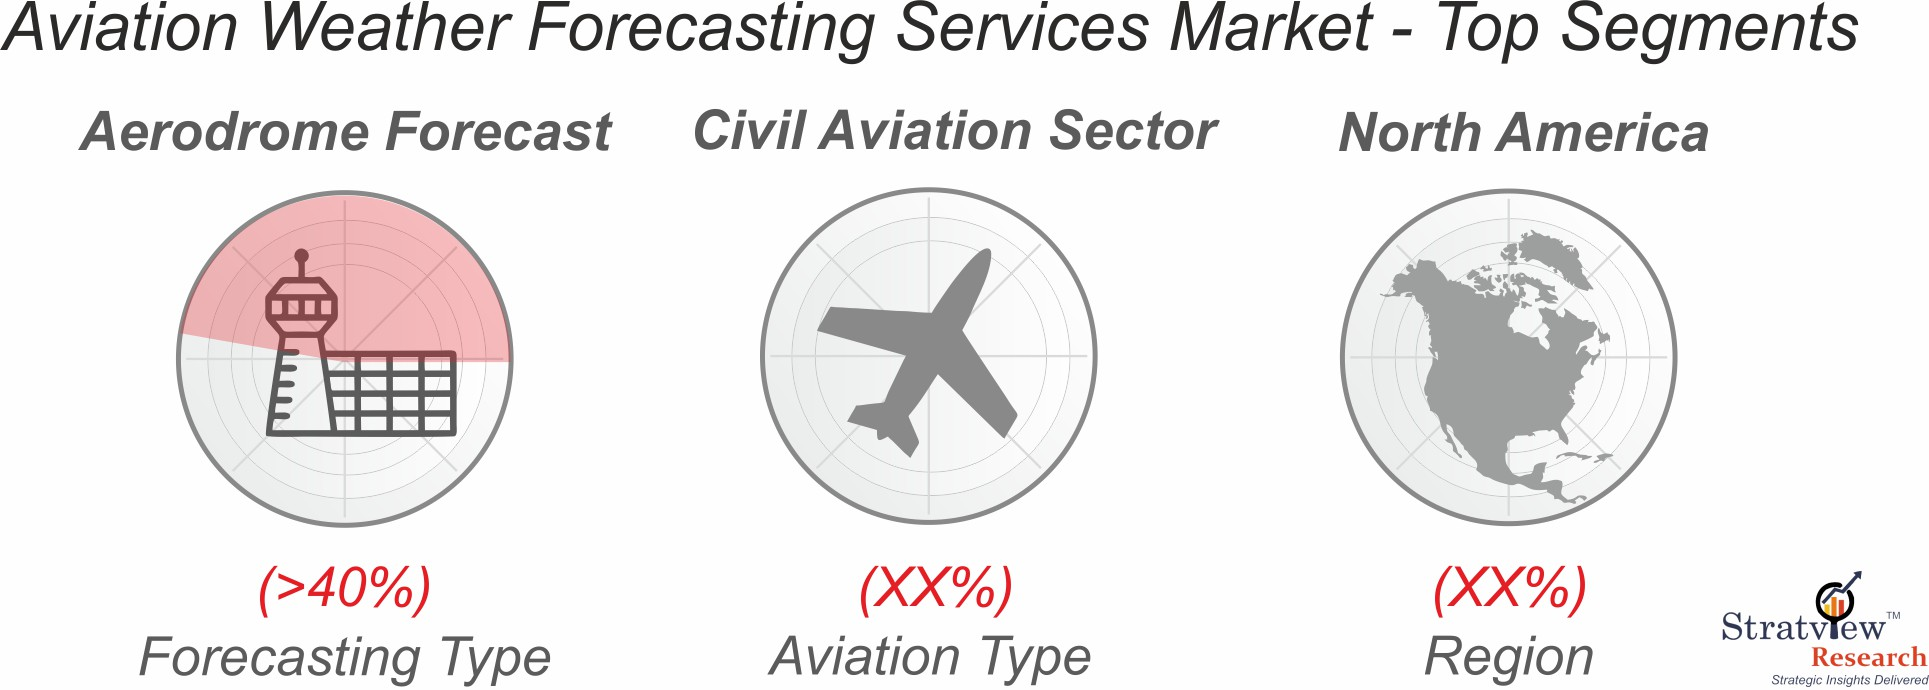 Aviation Weather Forecasting services market segment analysis